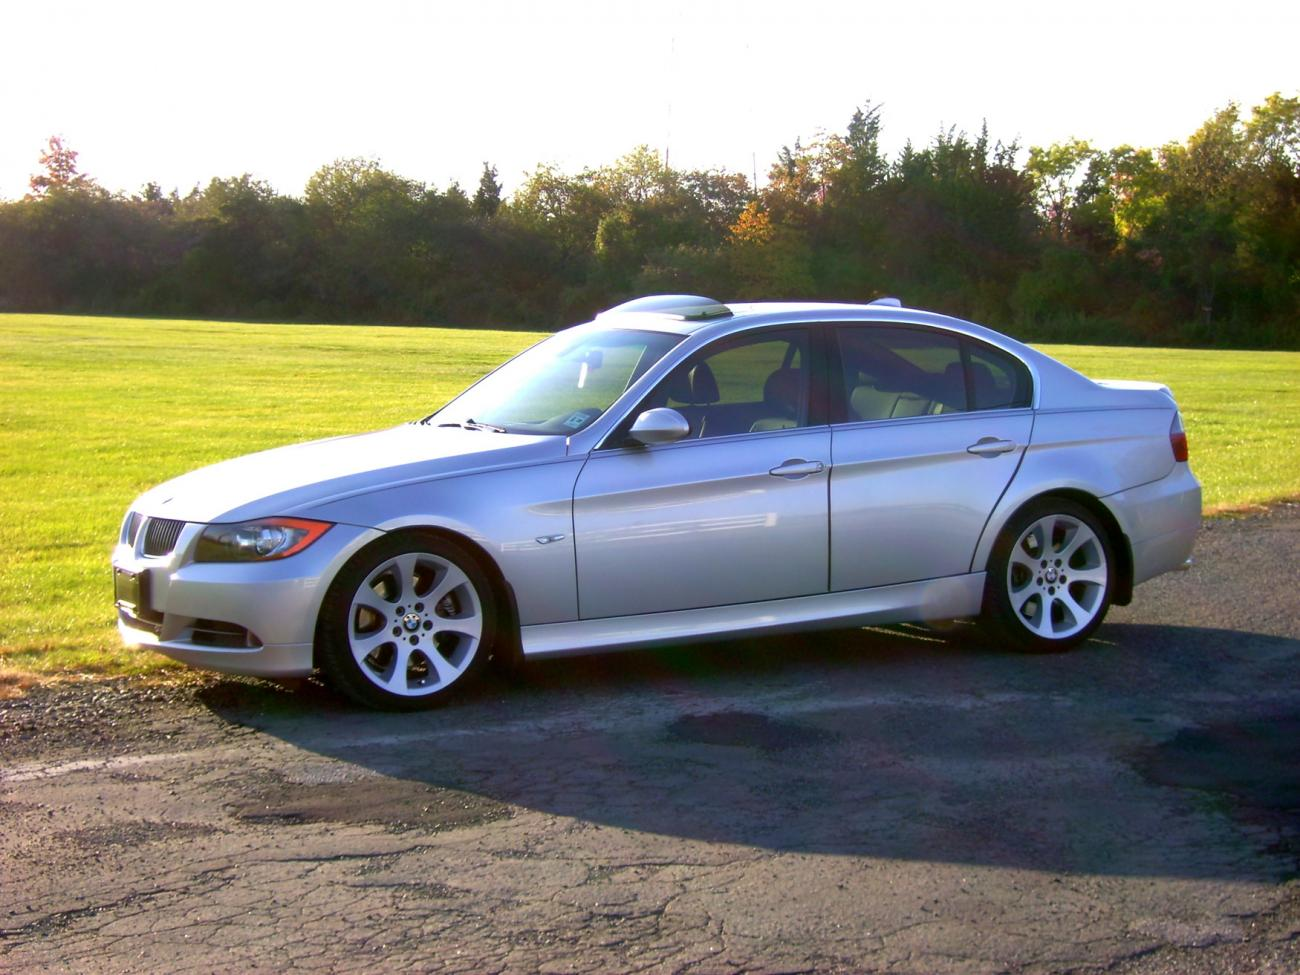 OFFICIAL 2006 BMW 330i E90 THREAD  Page 5